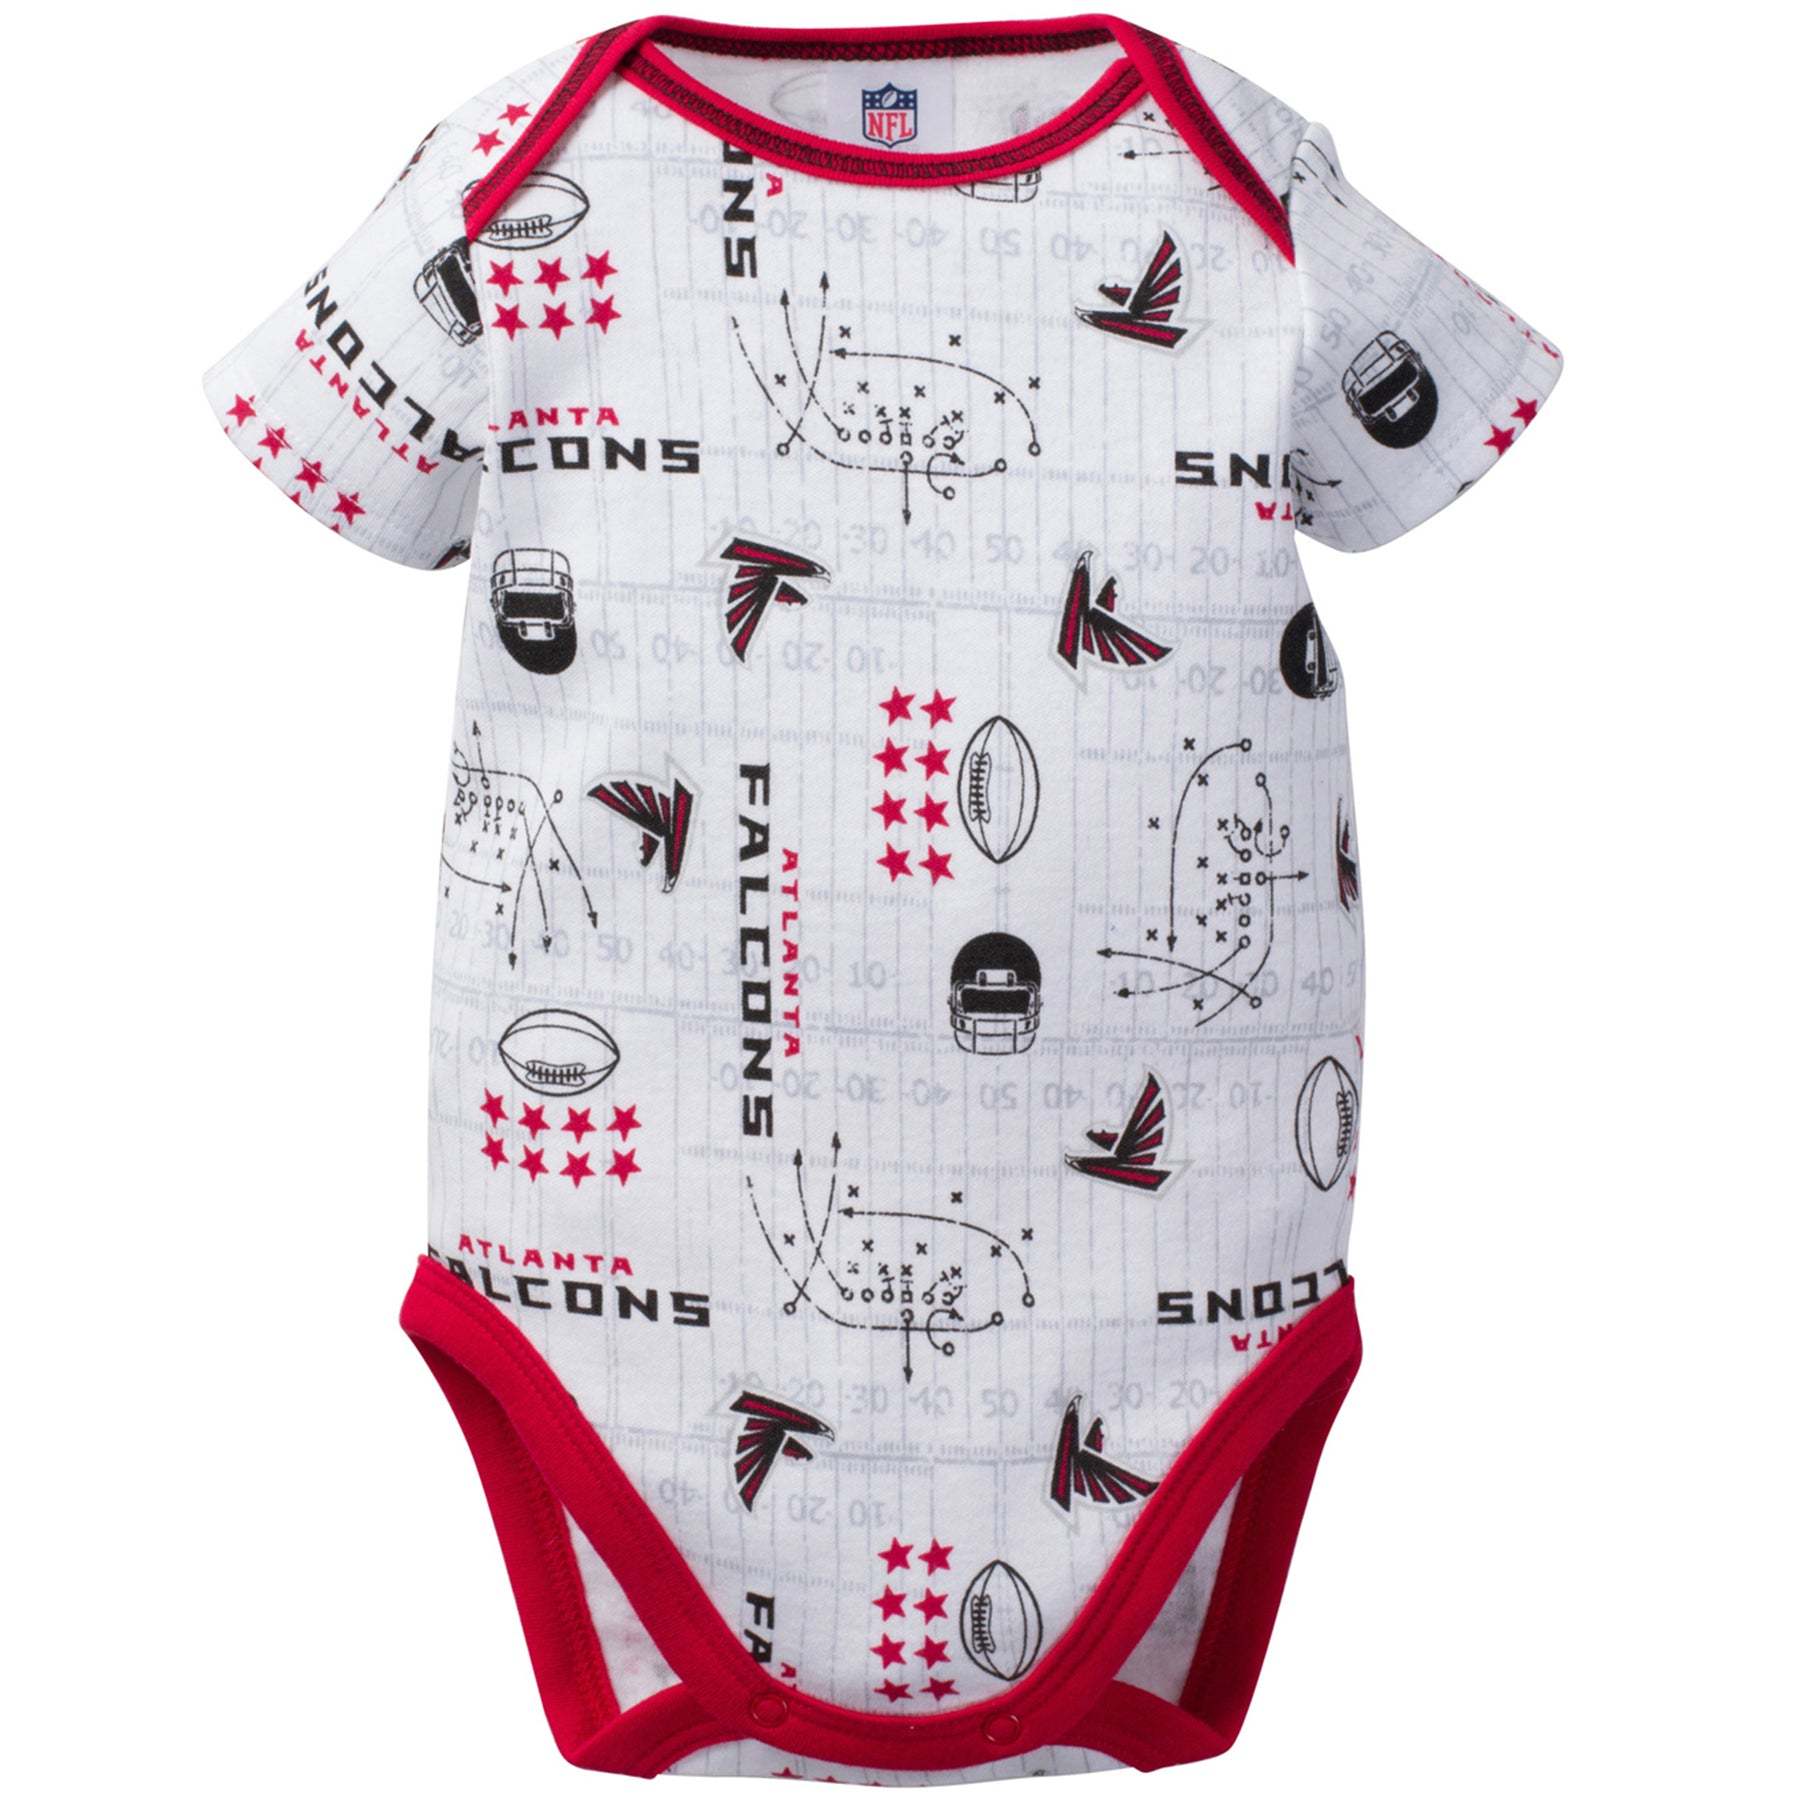 Falcons Baby 3 Pack Short Sleeve Onesies - babyfans